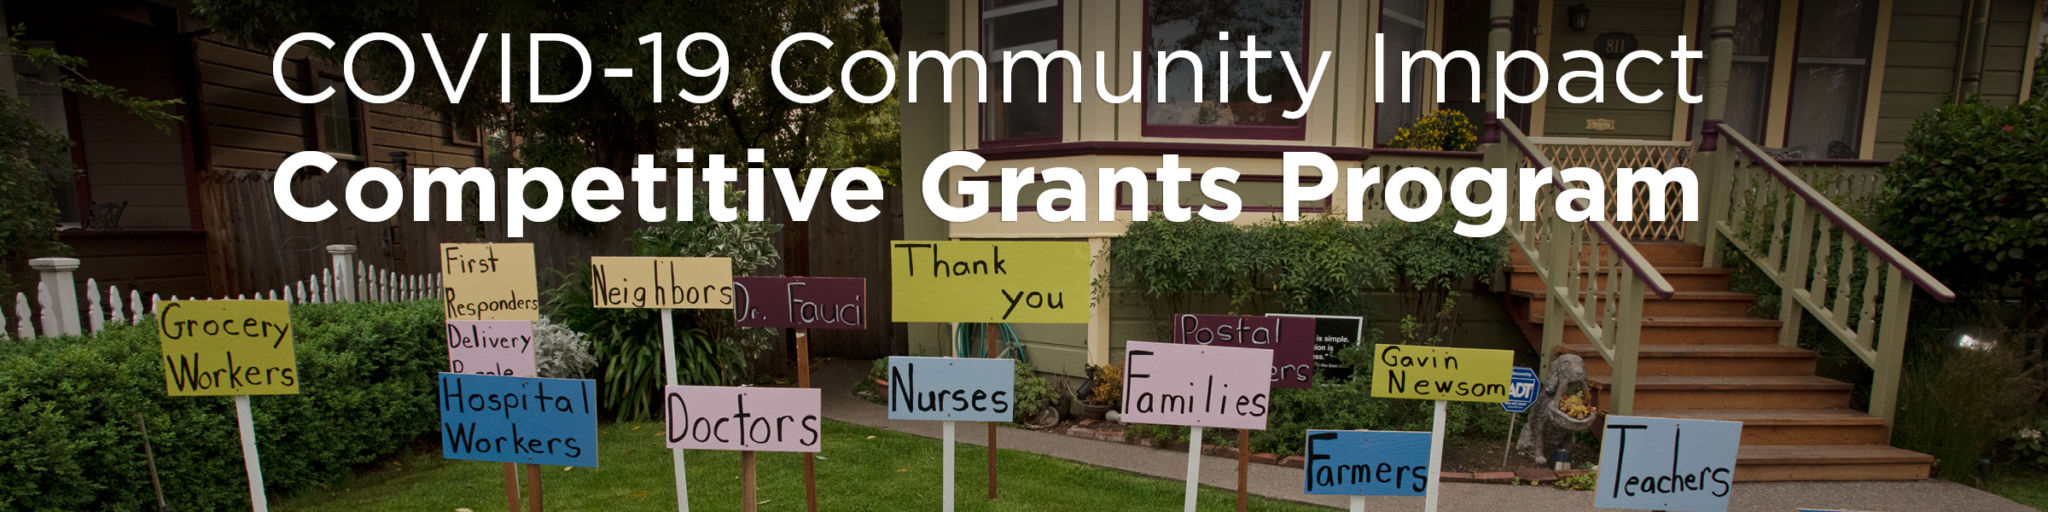 COVID-19 Community Impact Competitive Grants Program